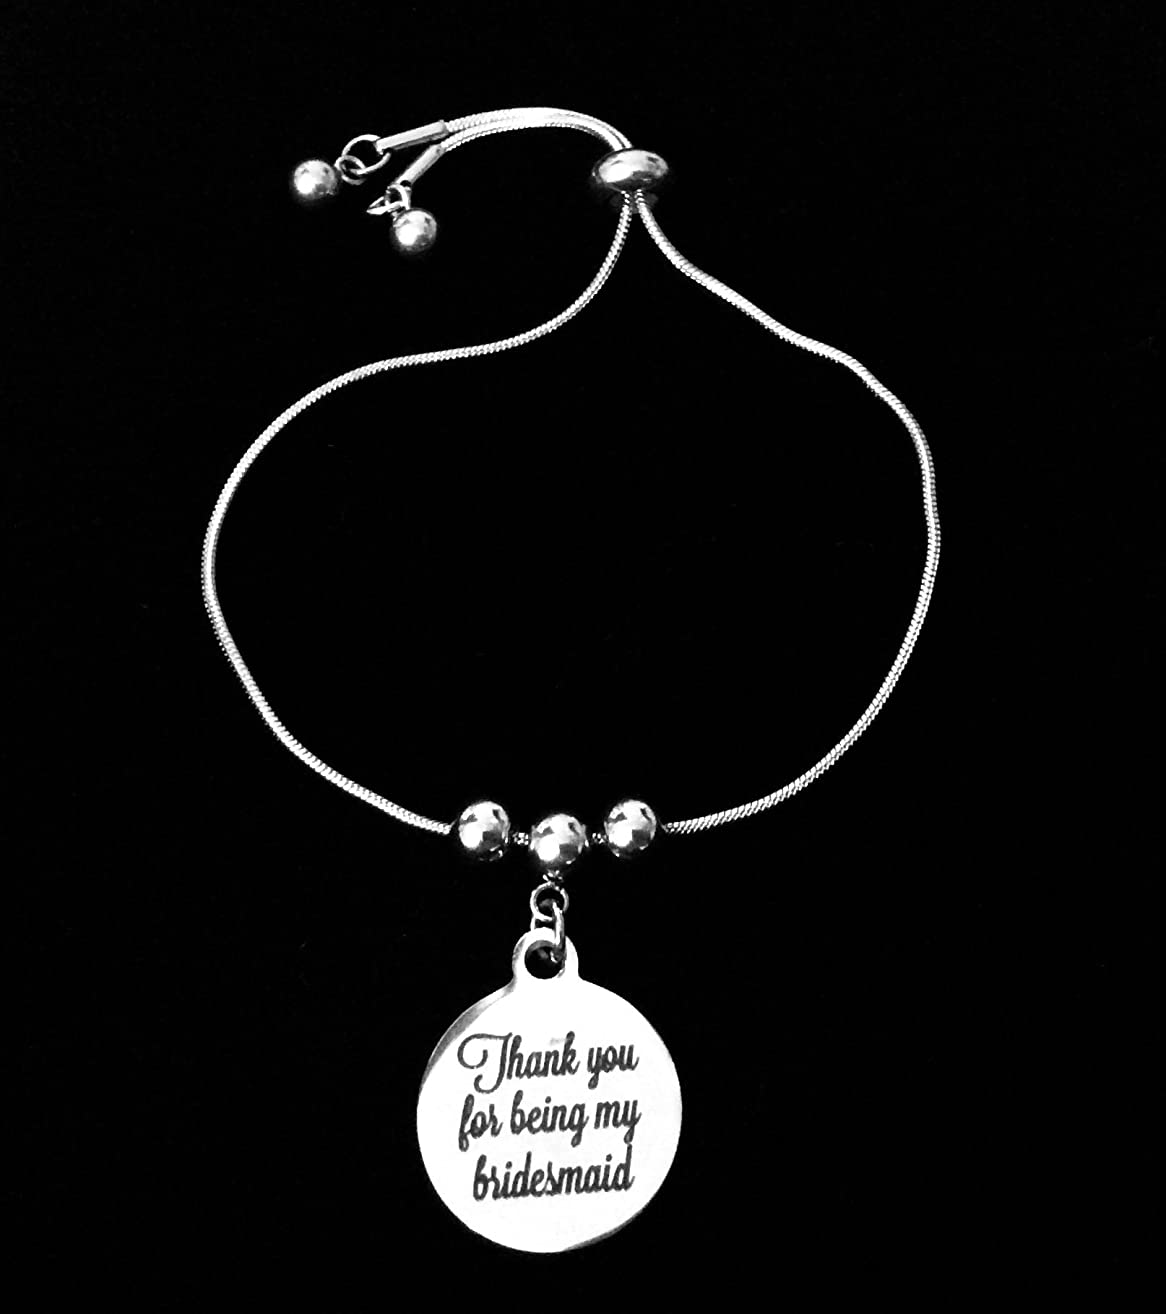 Thank You for Being My Bridesmaid Bolo Bracelet Stainless Steel Adjustable Bracelet Slider Chain One Size Fits All Gift Wedding Party